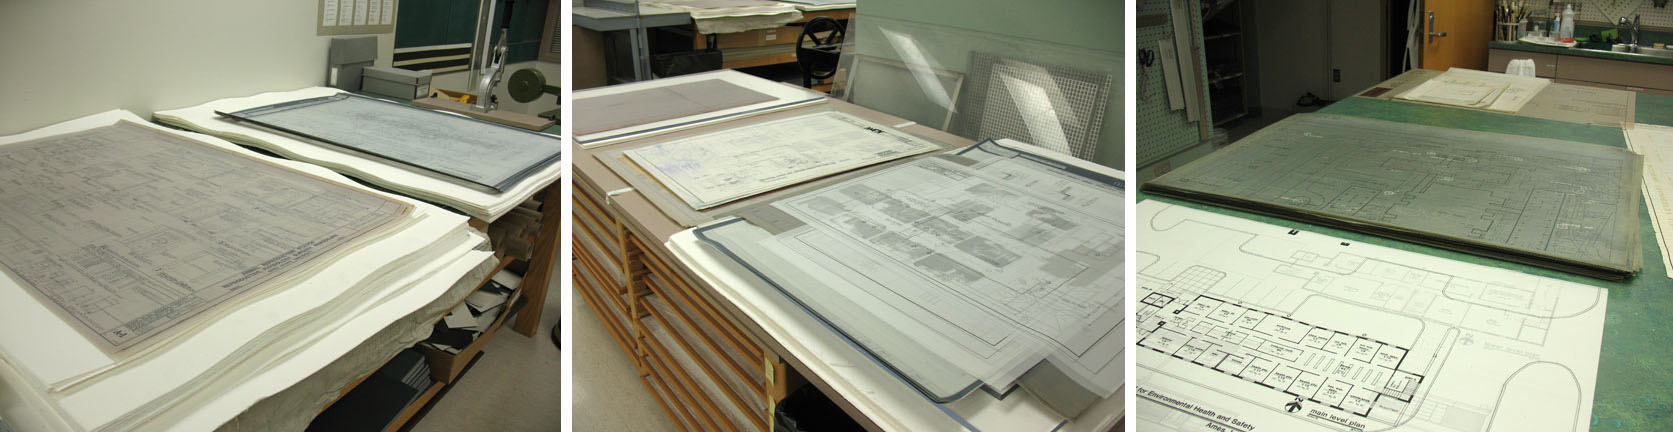 Flood Recovery Update: Mylar Drawings | Parks Library